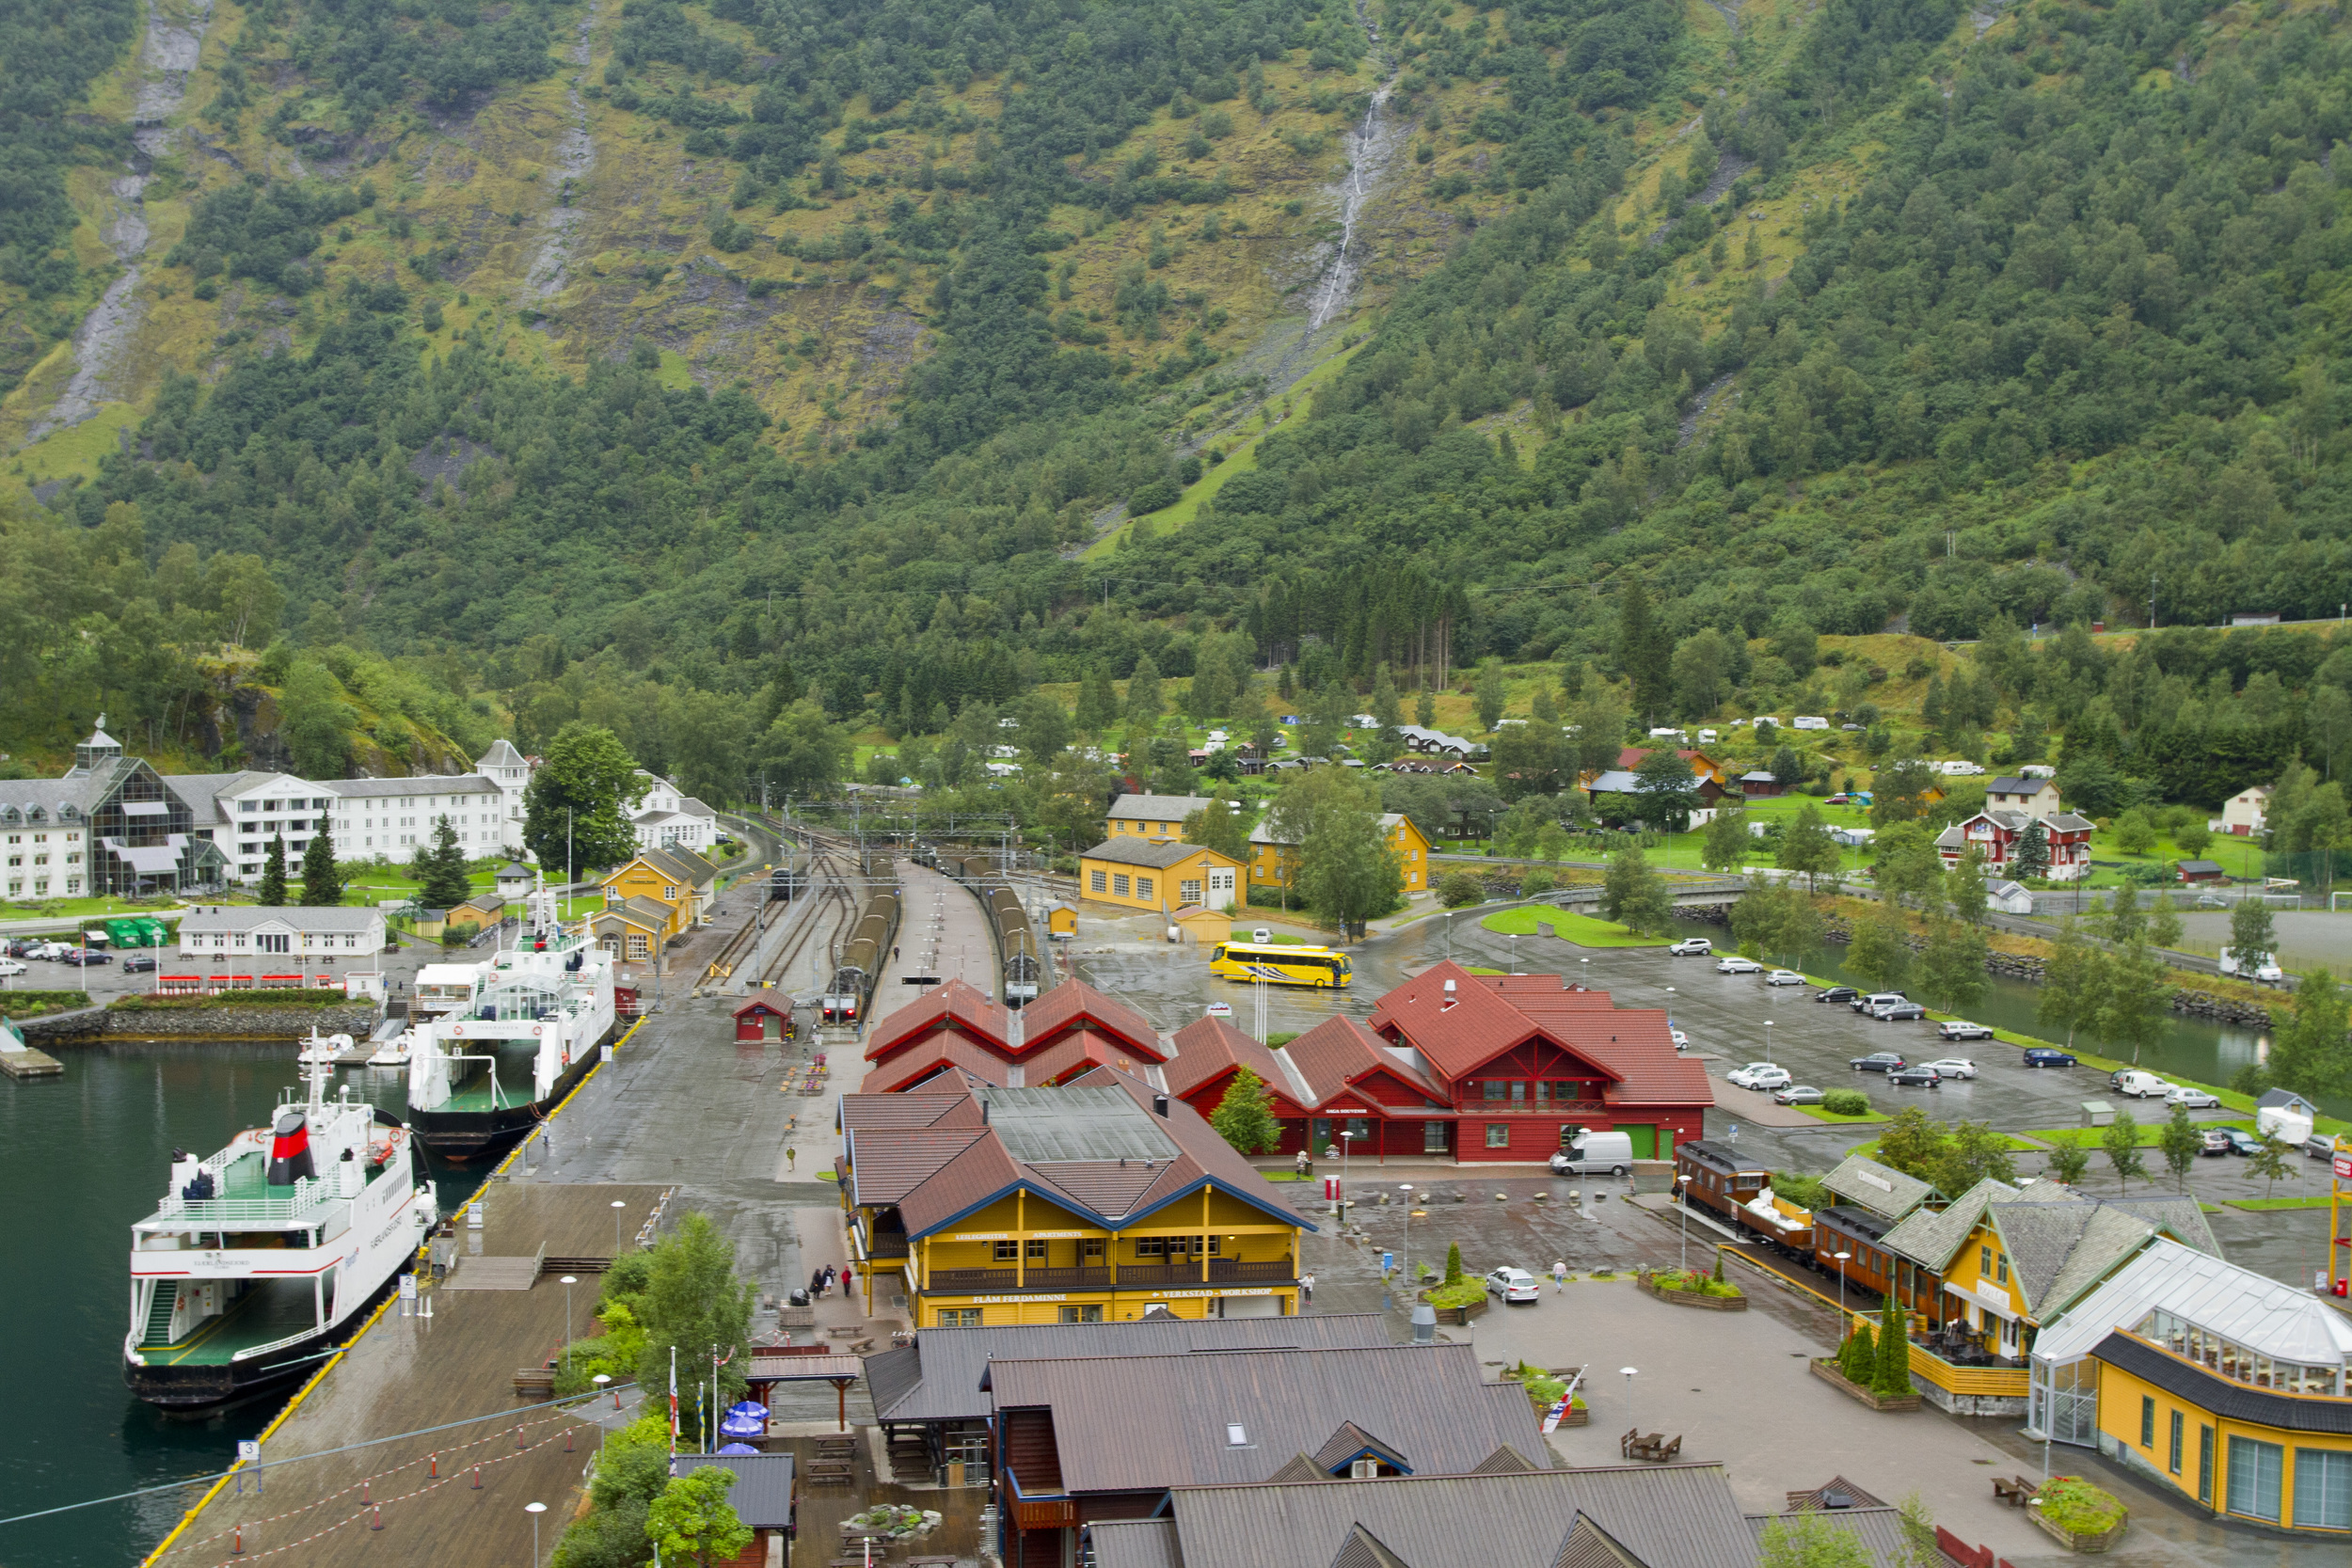 2. Flam is derived from the Old Norse word flá, which means a plain between steep mountains. The image above shows the flat land of theflood plains of the Flåm River. Empty ferries are docked, the car parks are quiet around the retail outlets towards the centre of the image. In the background waterfalls can be seen flowing towards the left of the frame.